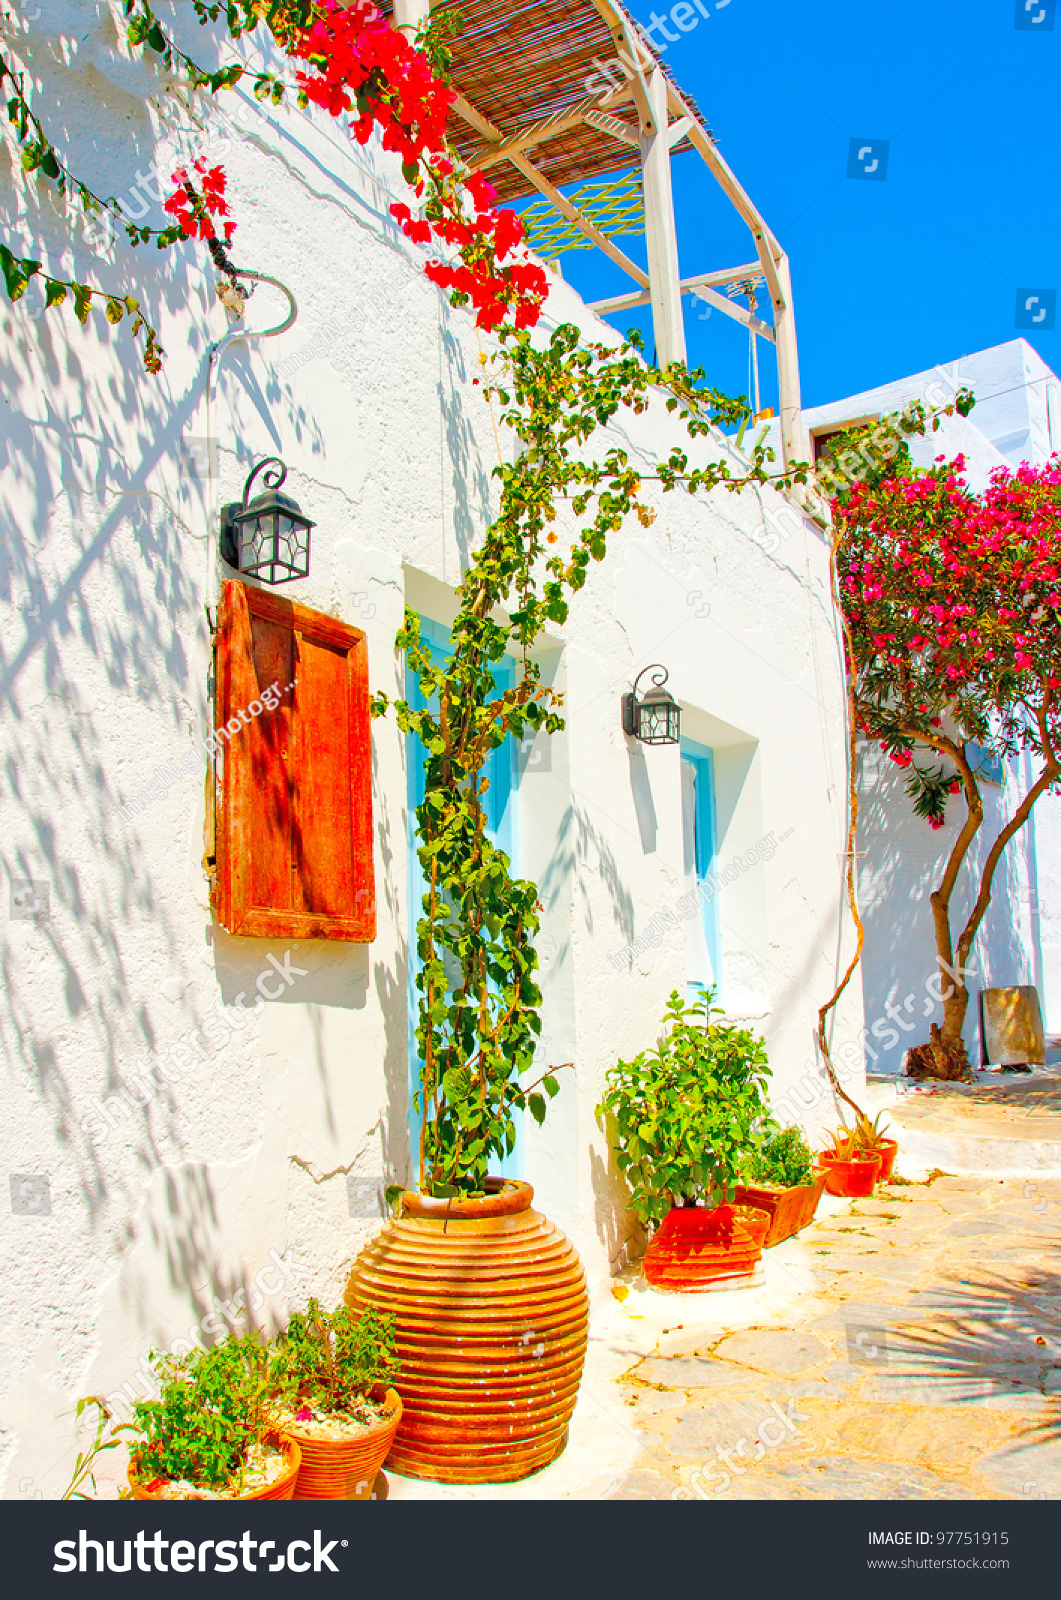 Old beautiful traditional house in chora the capital of amorgos island - Old Beautiful Traditional House In Chora The Capital Of Amorgos Island In Greece